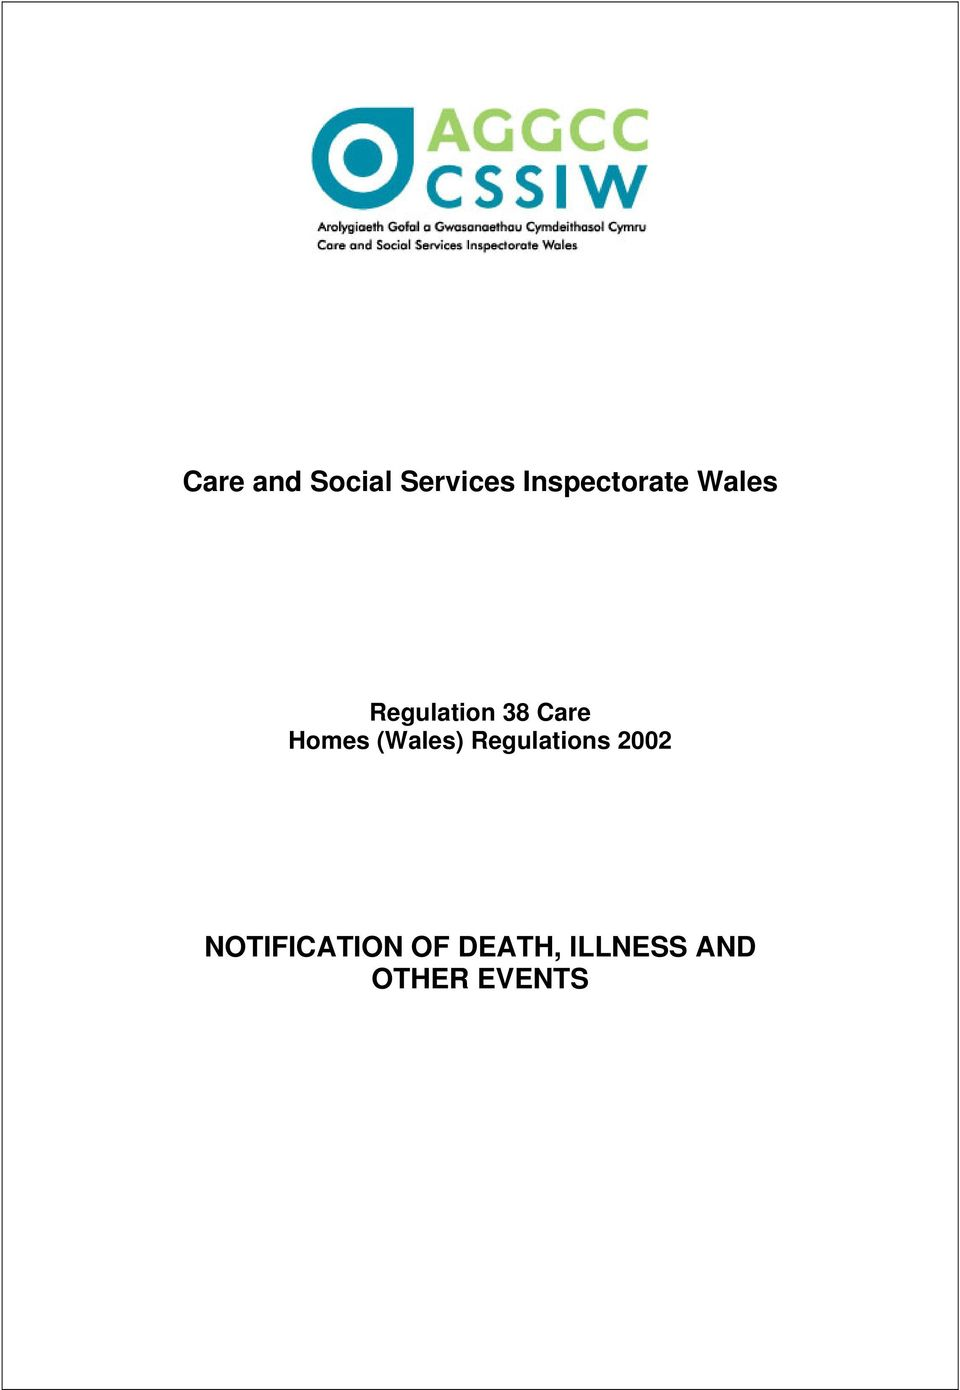 Care Homes (Wales) Regulations 2002